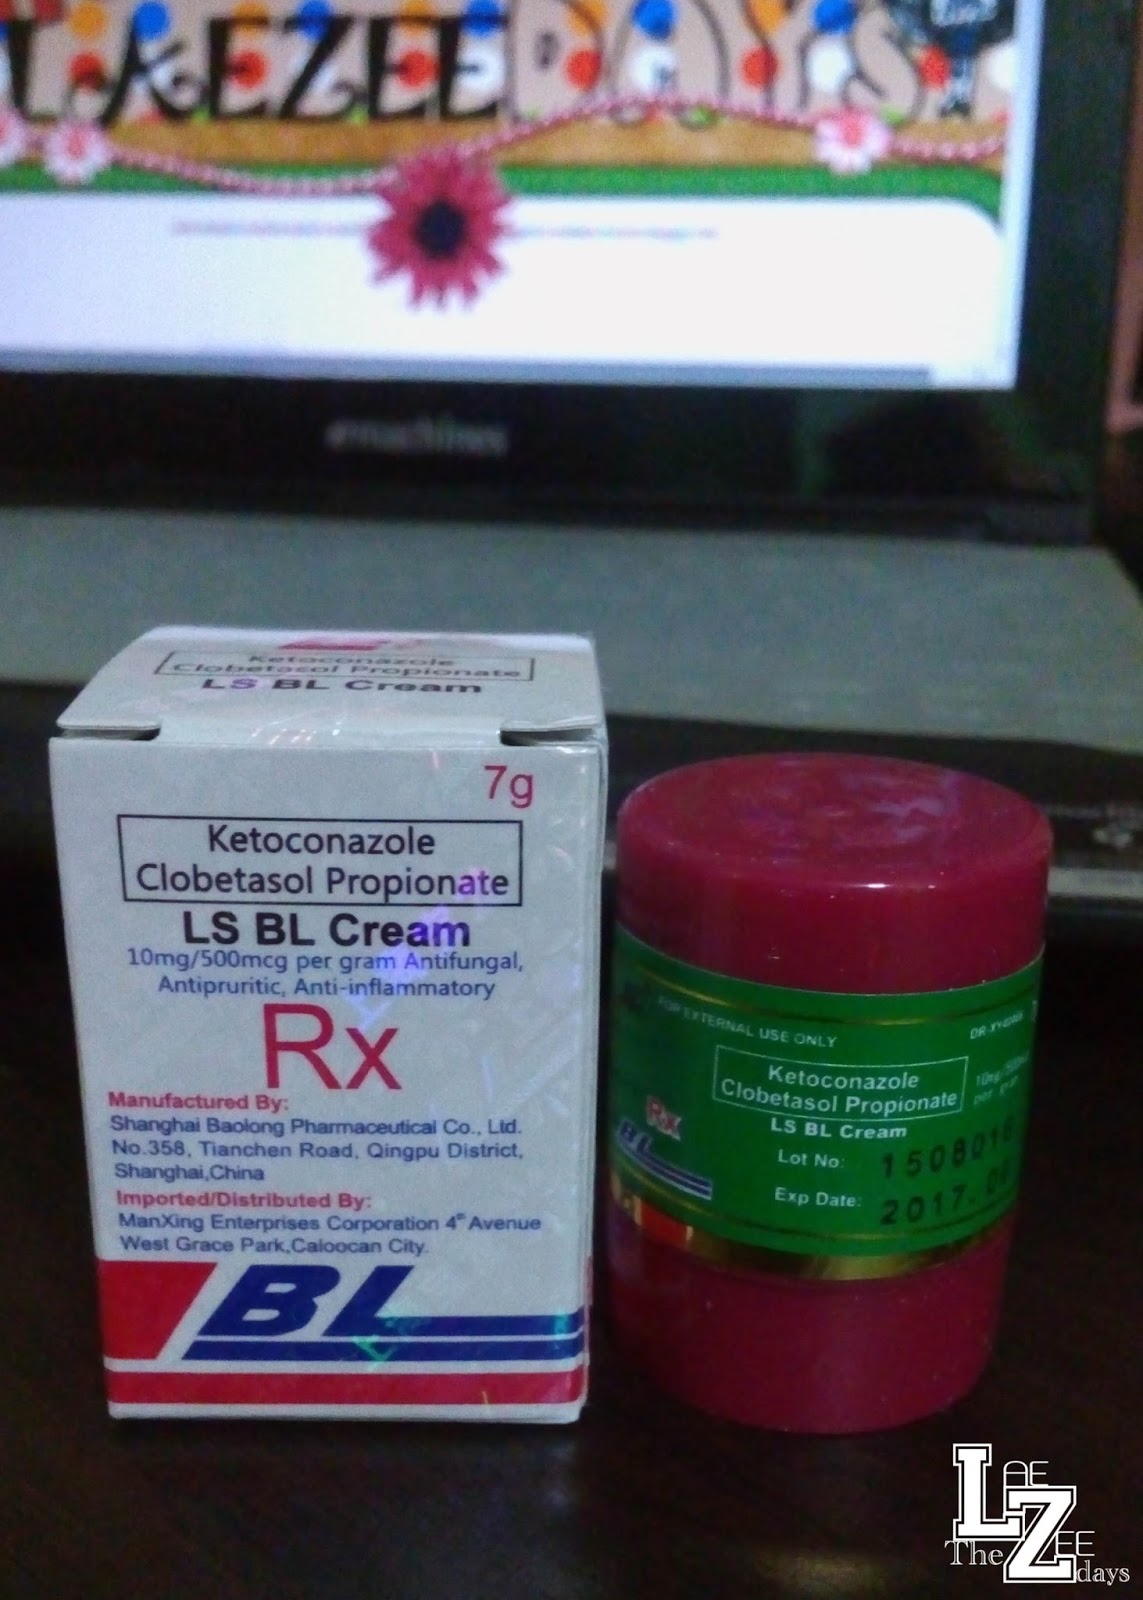 The Laezee Days Ls Bl Cream Review